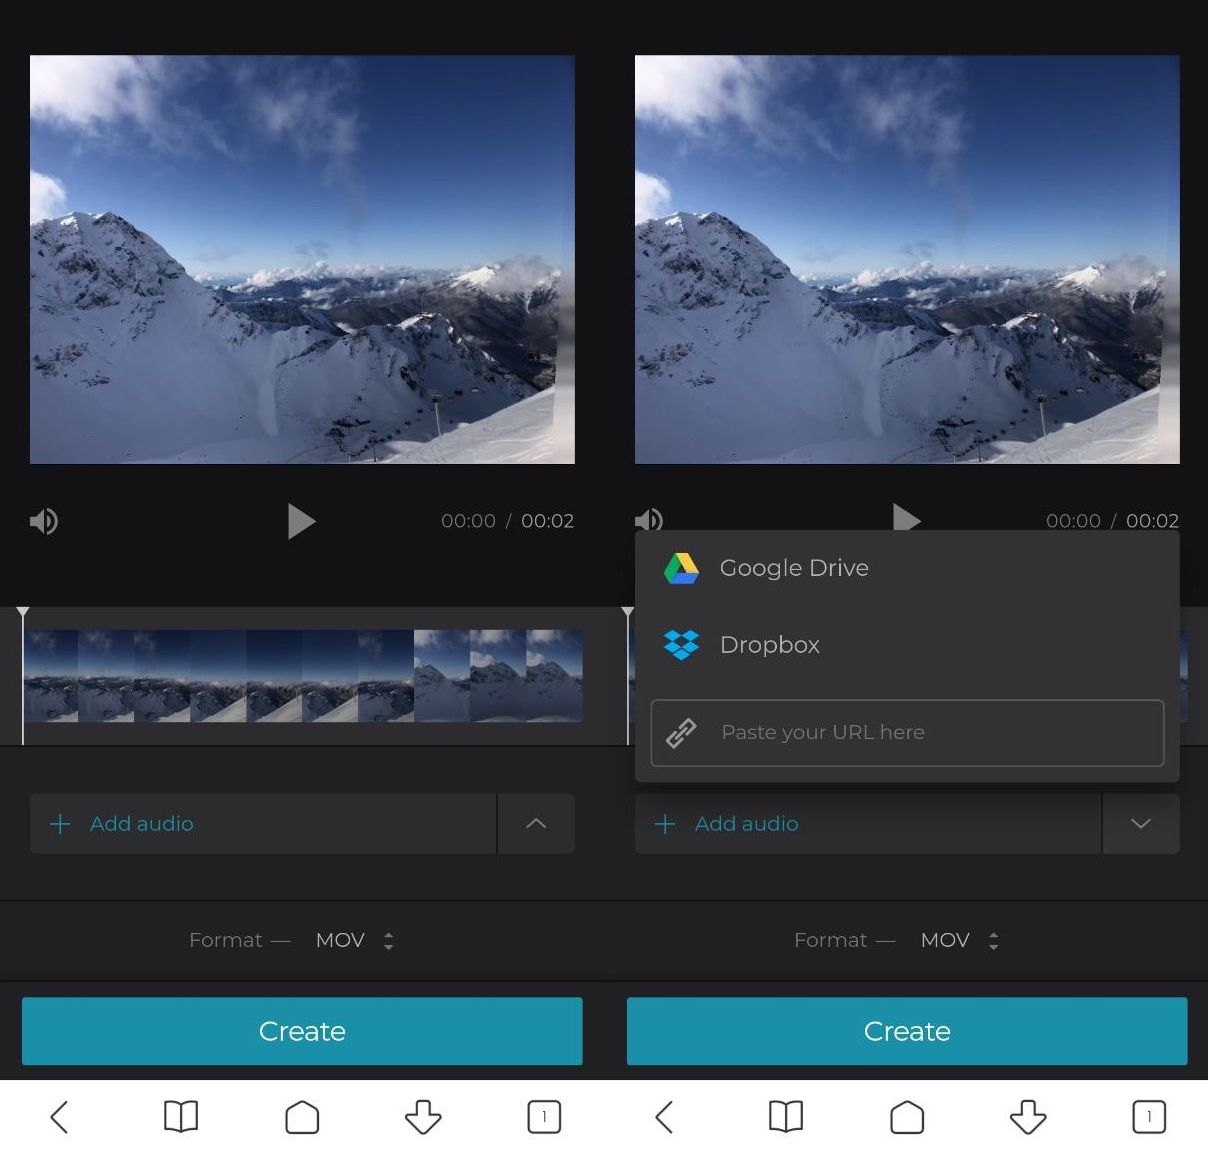 Upload an audio to add to video on Android